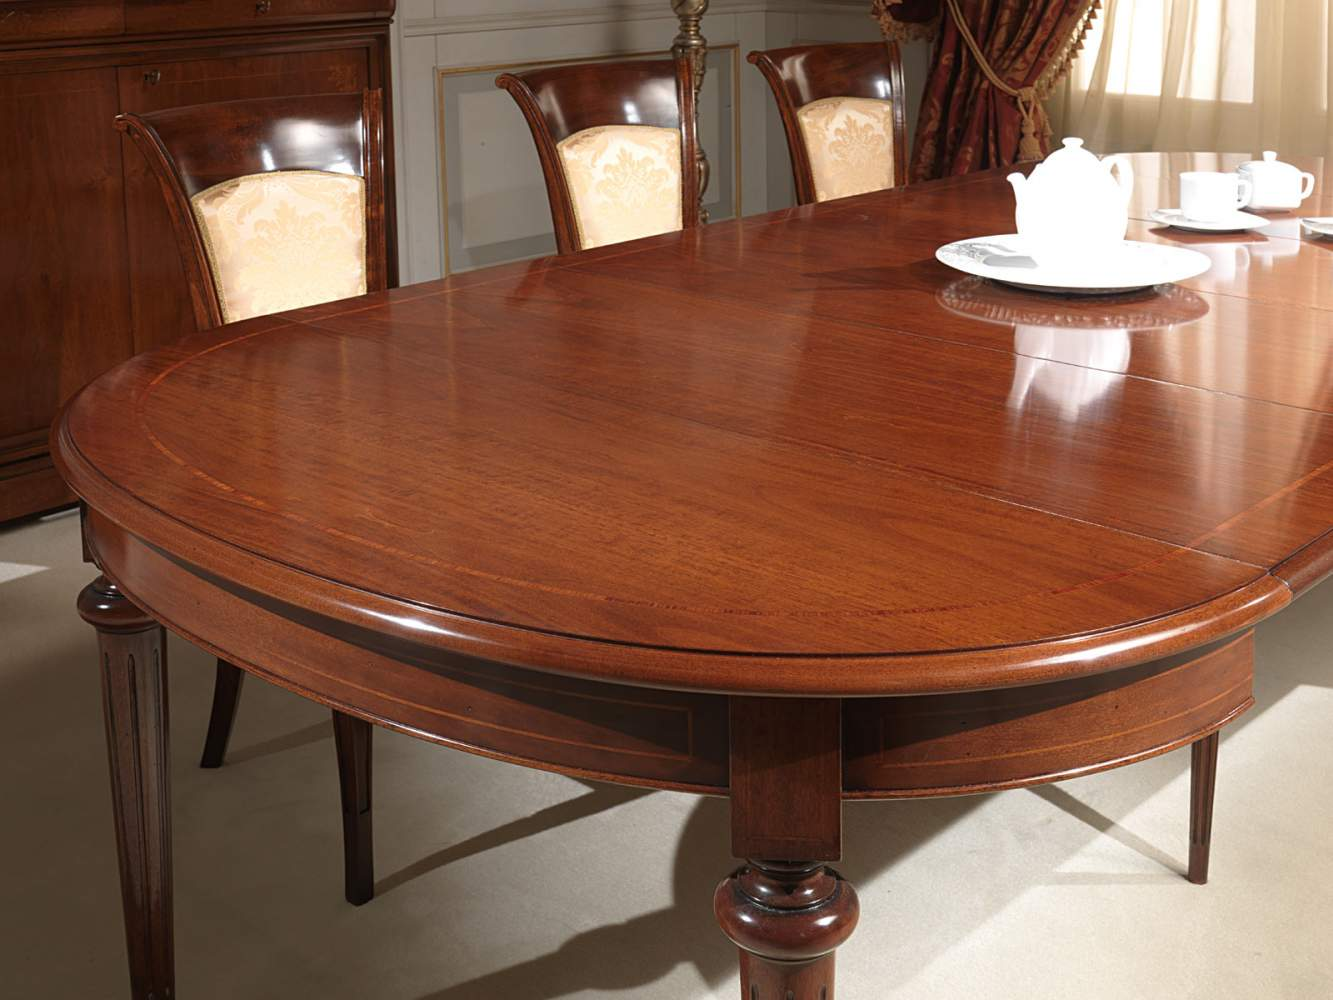 Extendable oval table in walnut